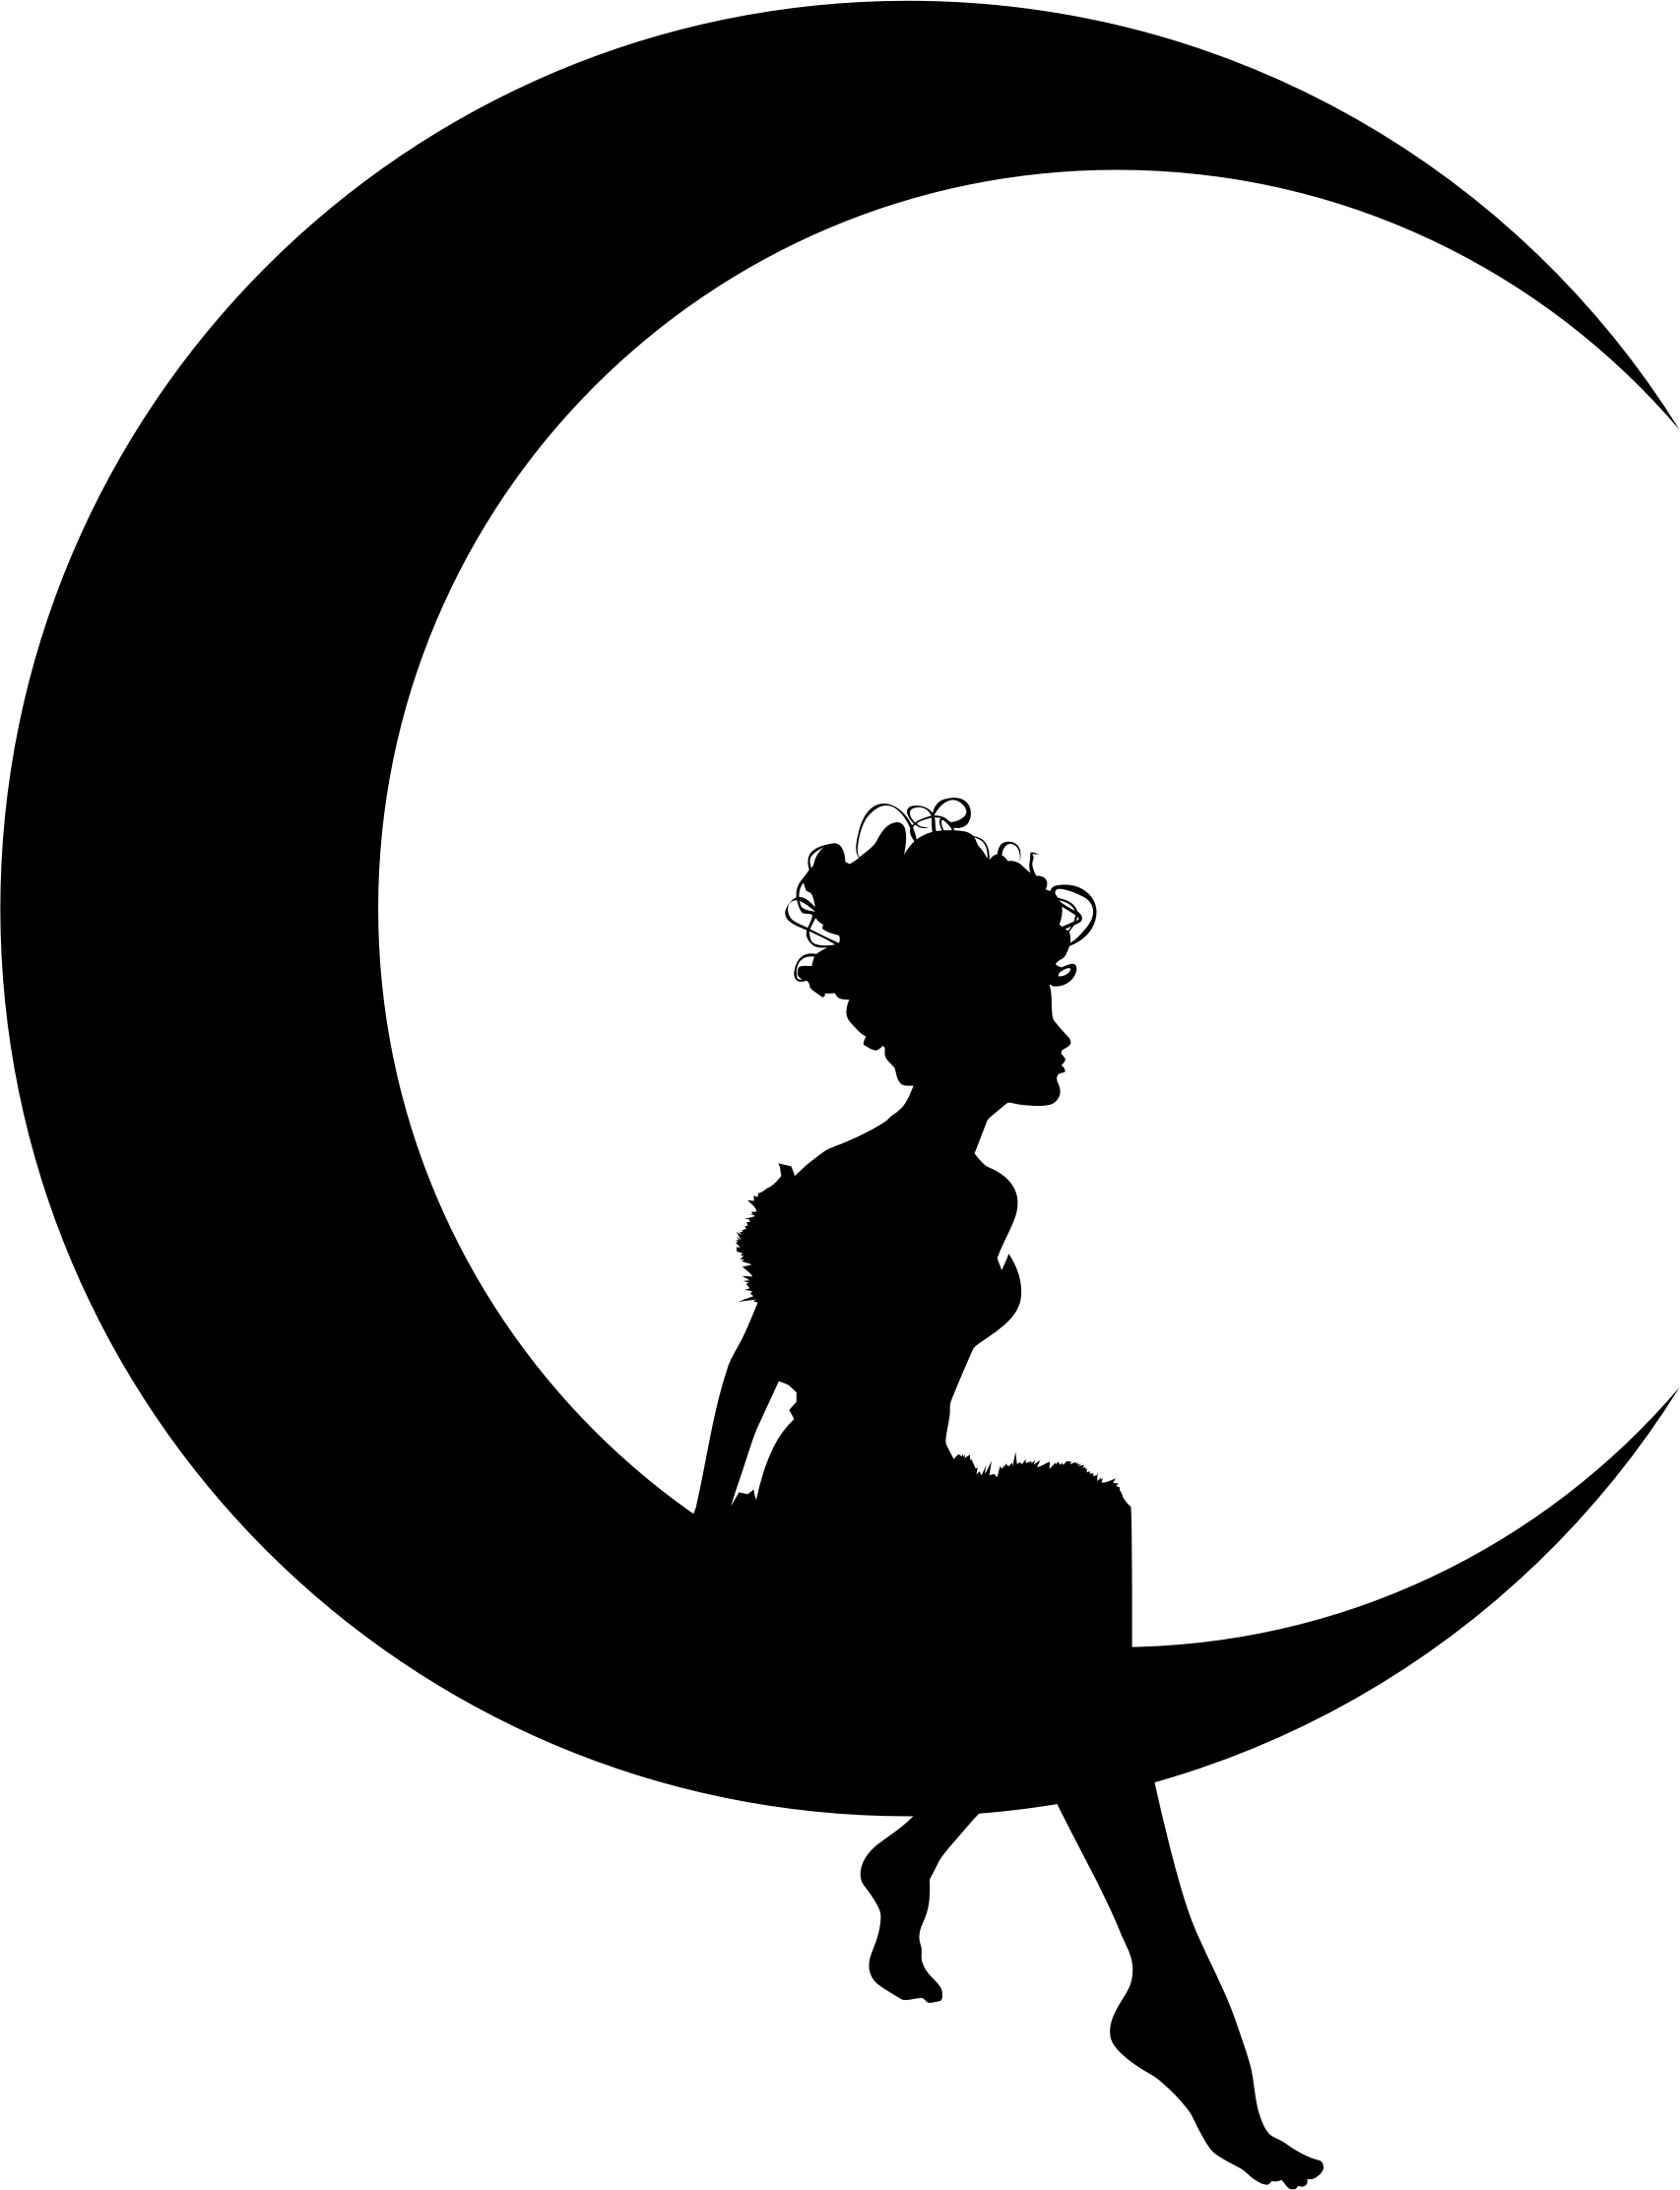 Circle clipart translucent. Fairy sitting on moon